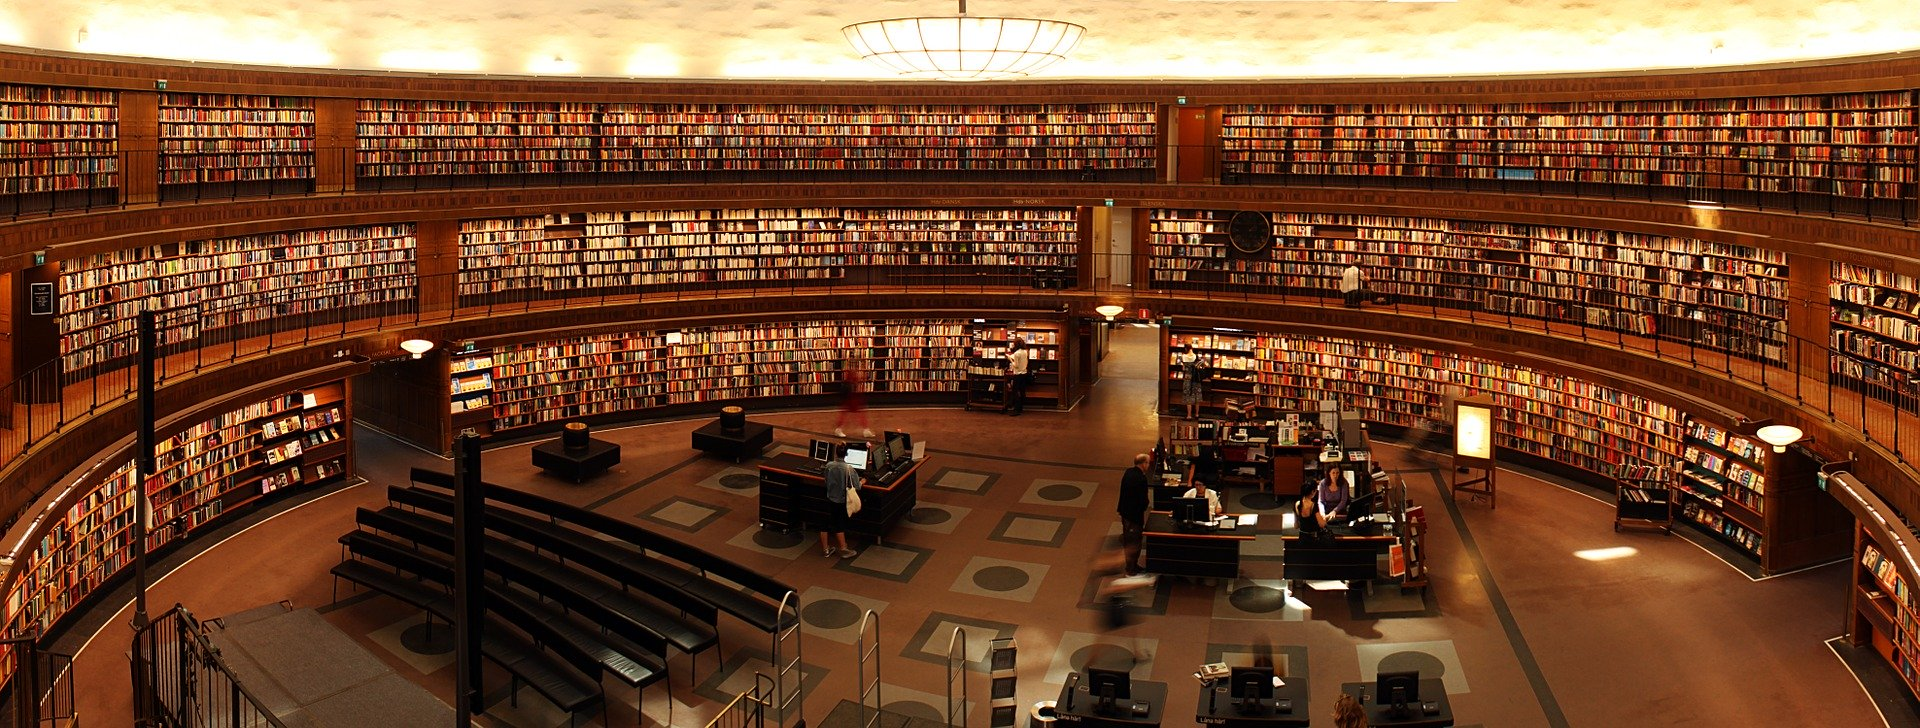 A picture of a library filled with books.